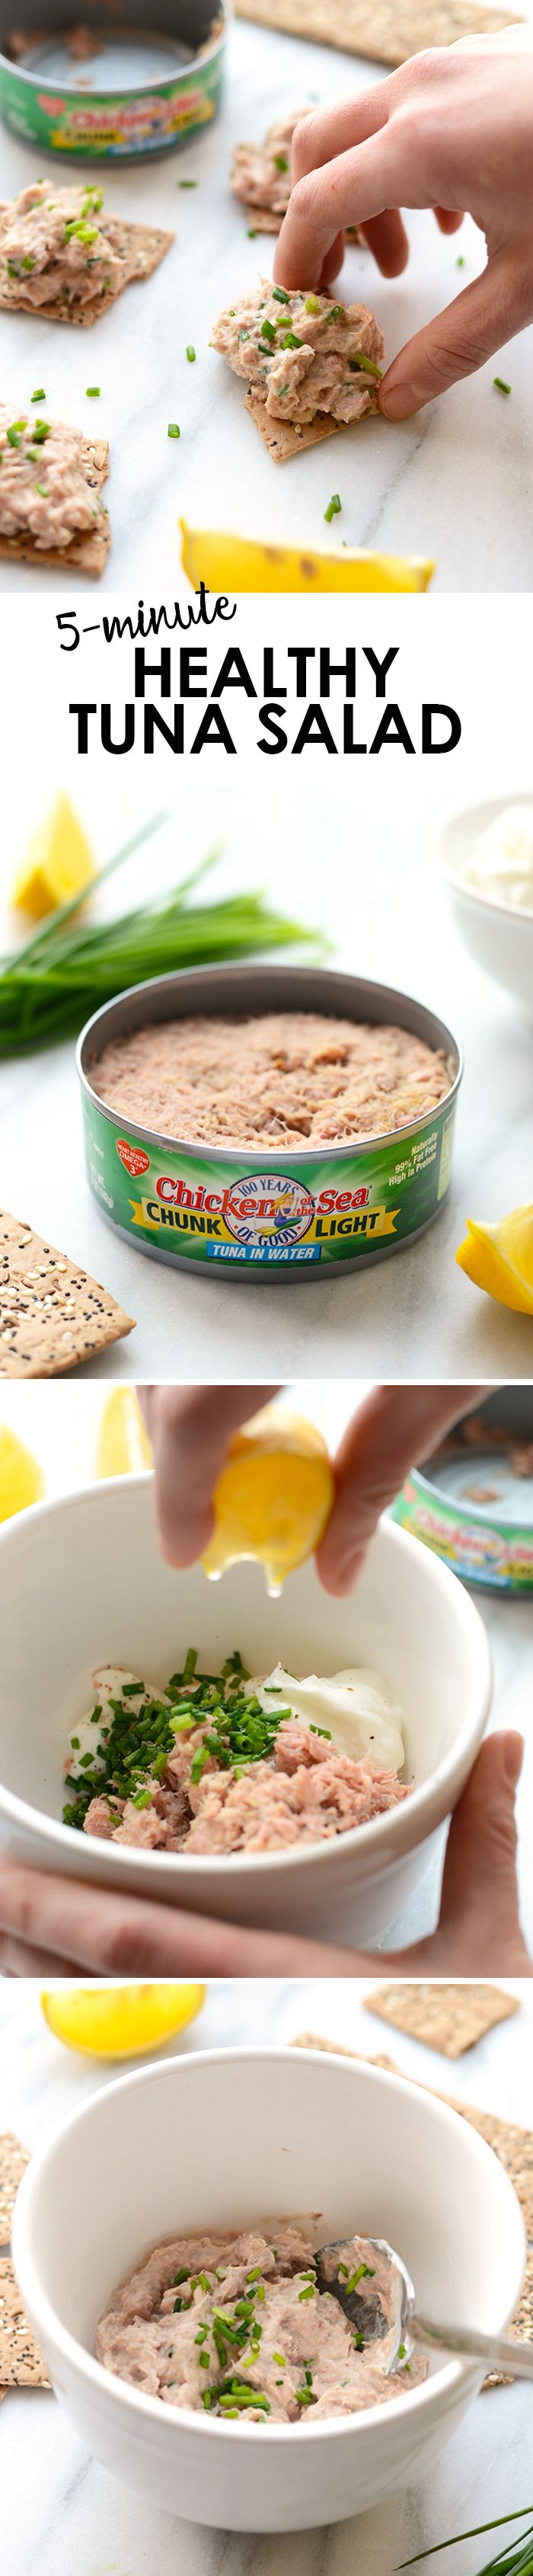 All you need is 4 ingredients and 5 minutes to make this Healthy Tuna Salad that's low carb and fat and packed with protein!